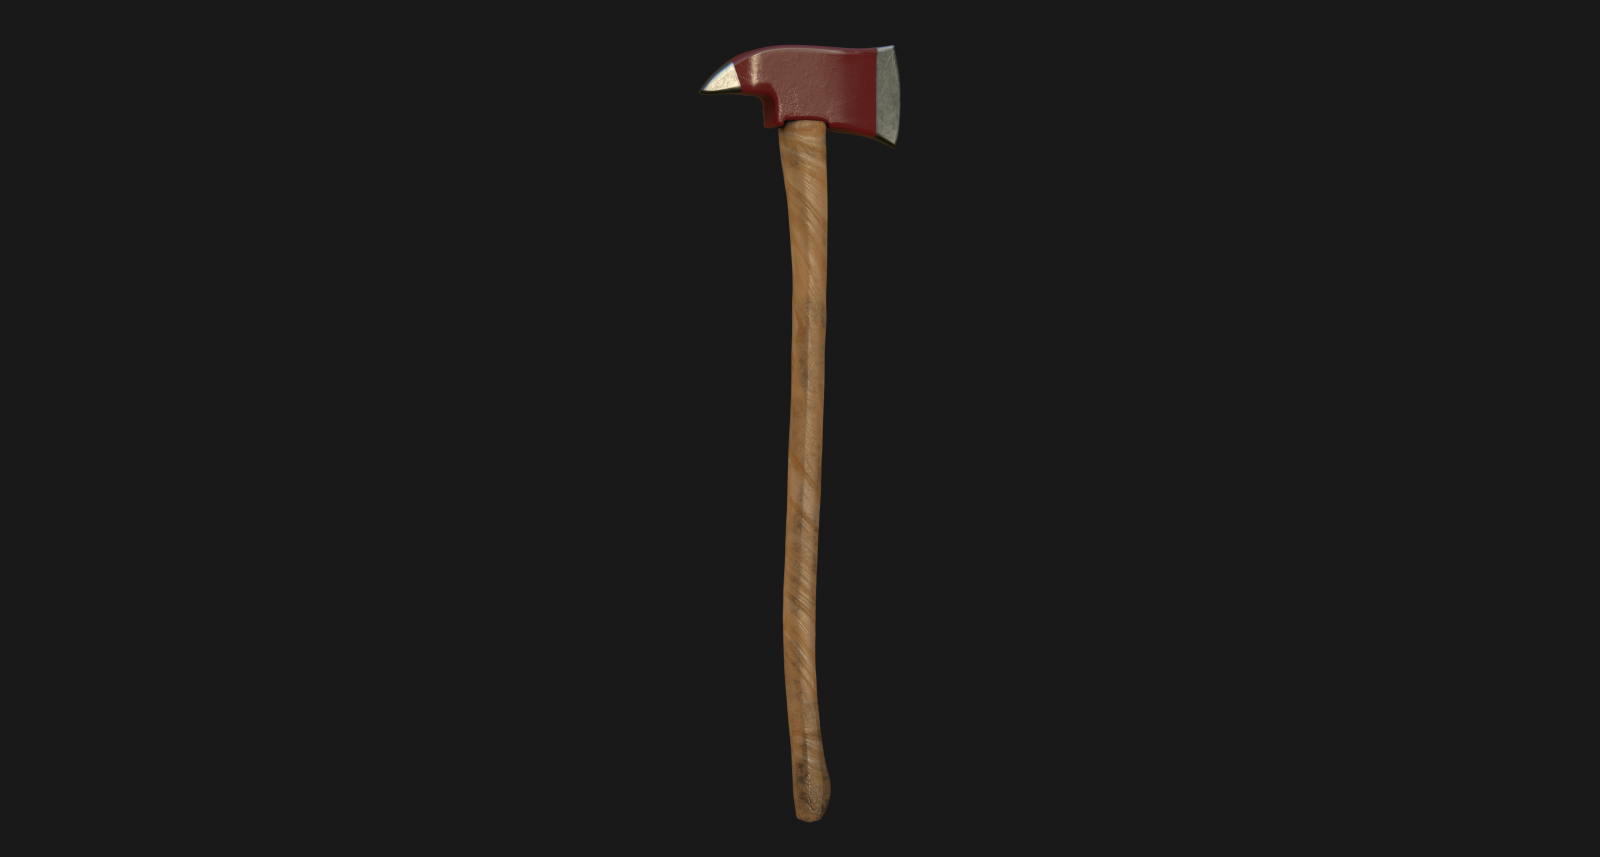 Fire axe wide